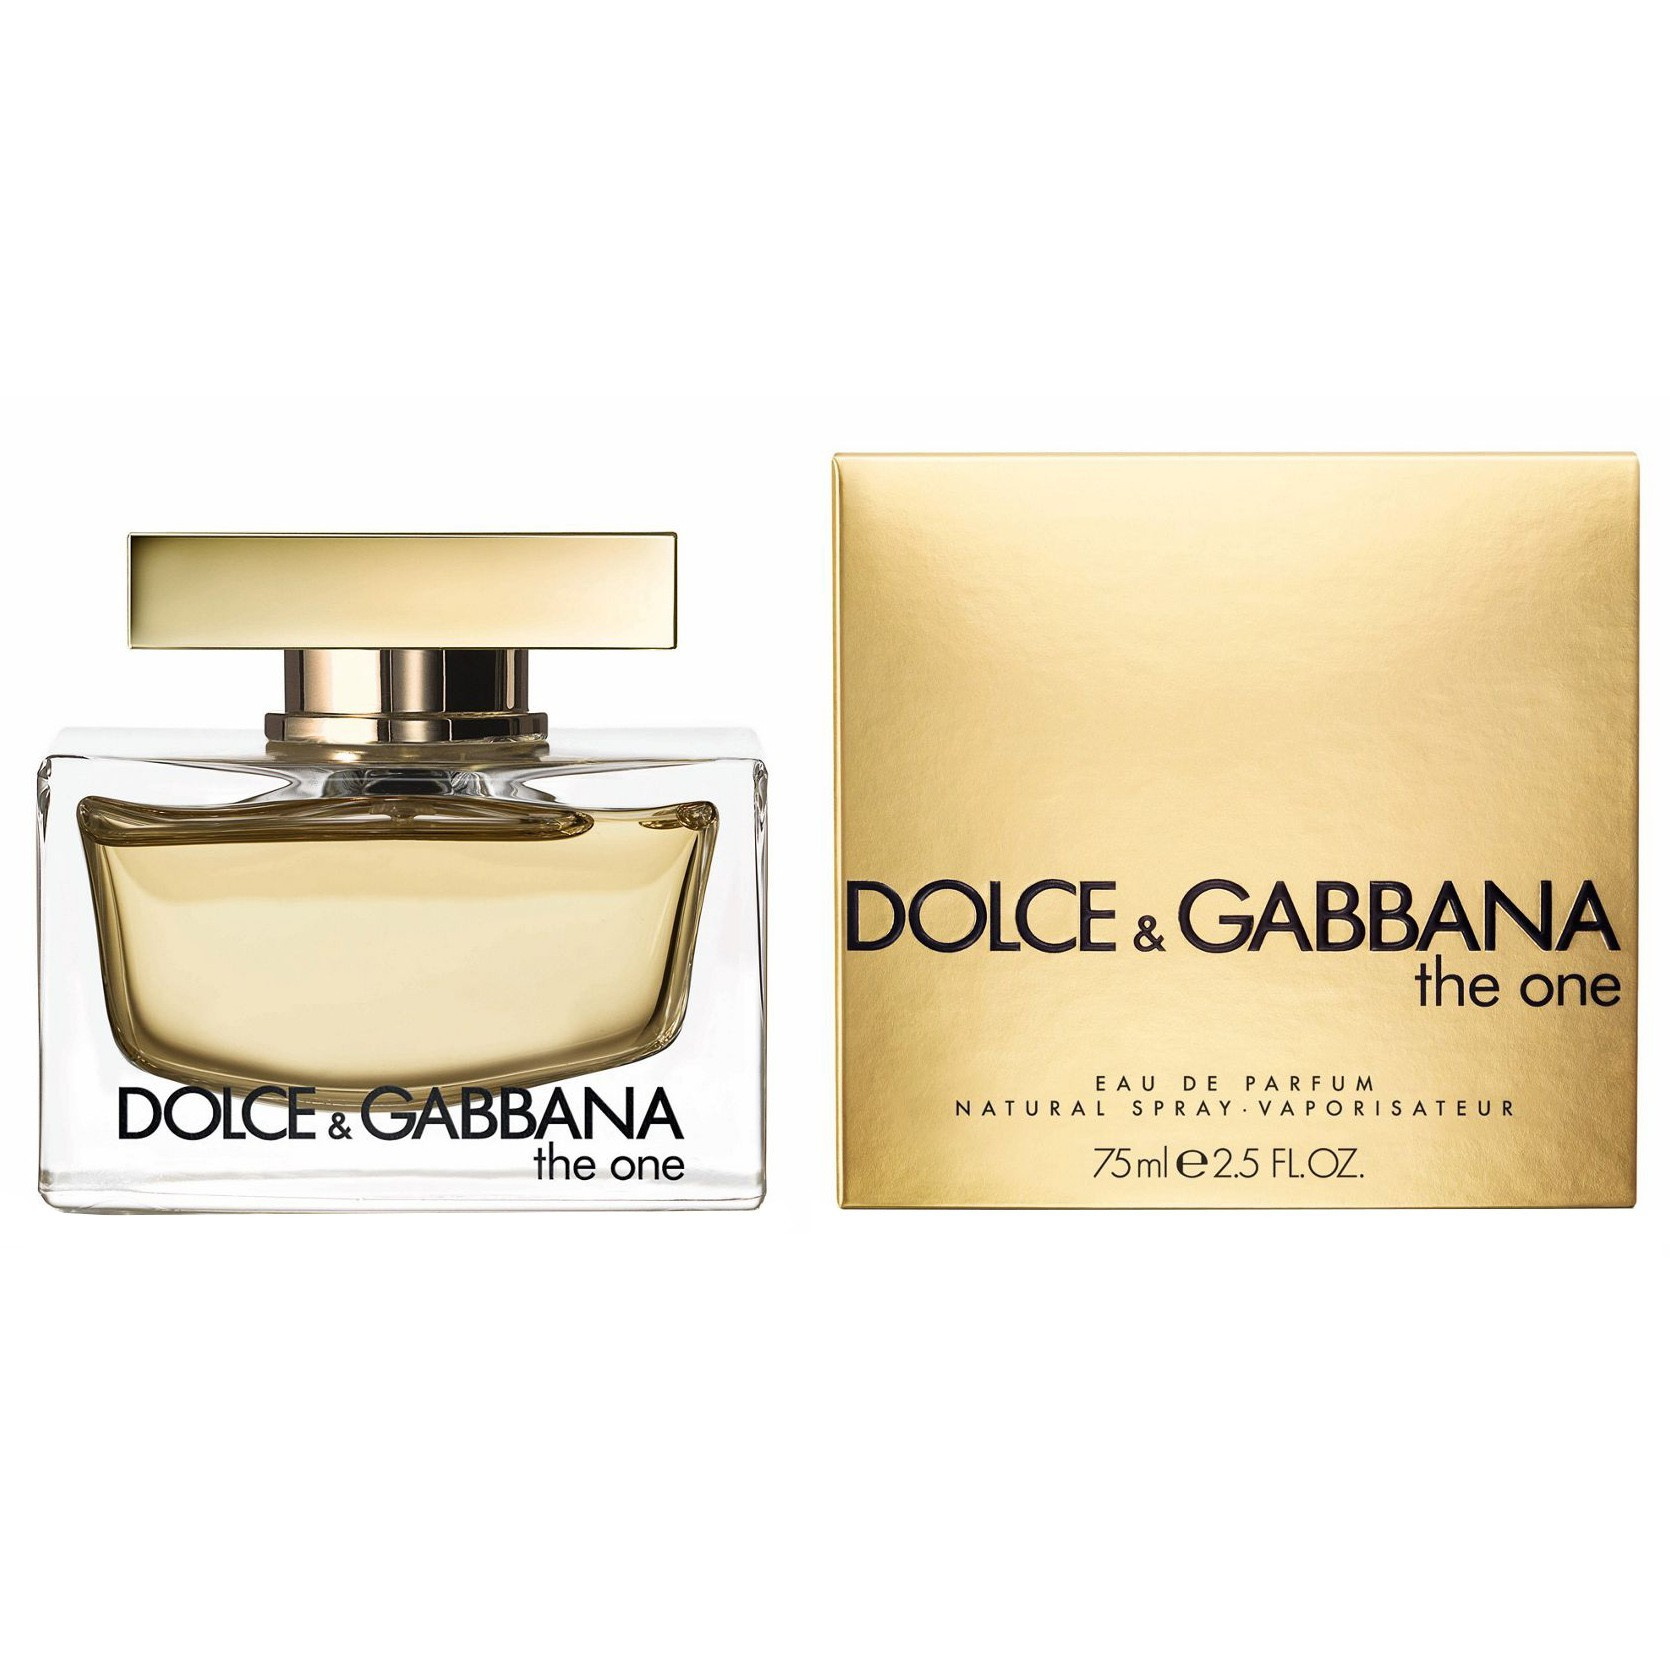 dolce_gabbana_the_one_1